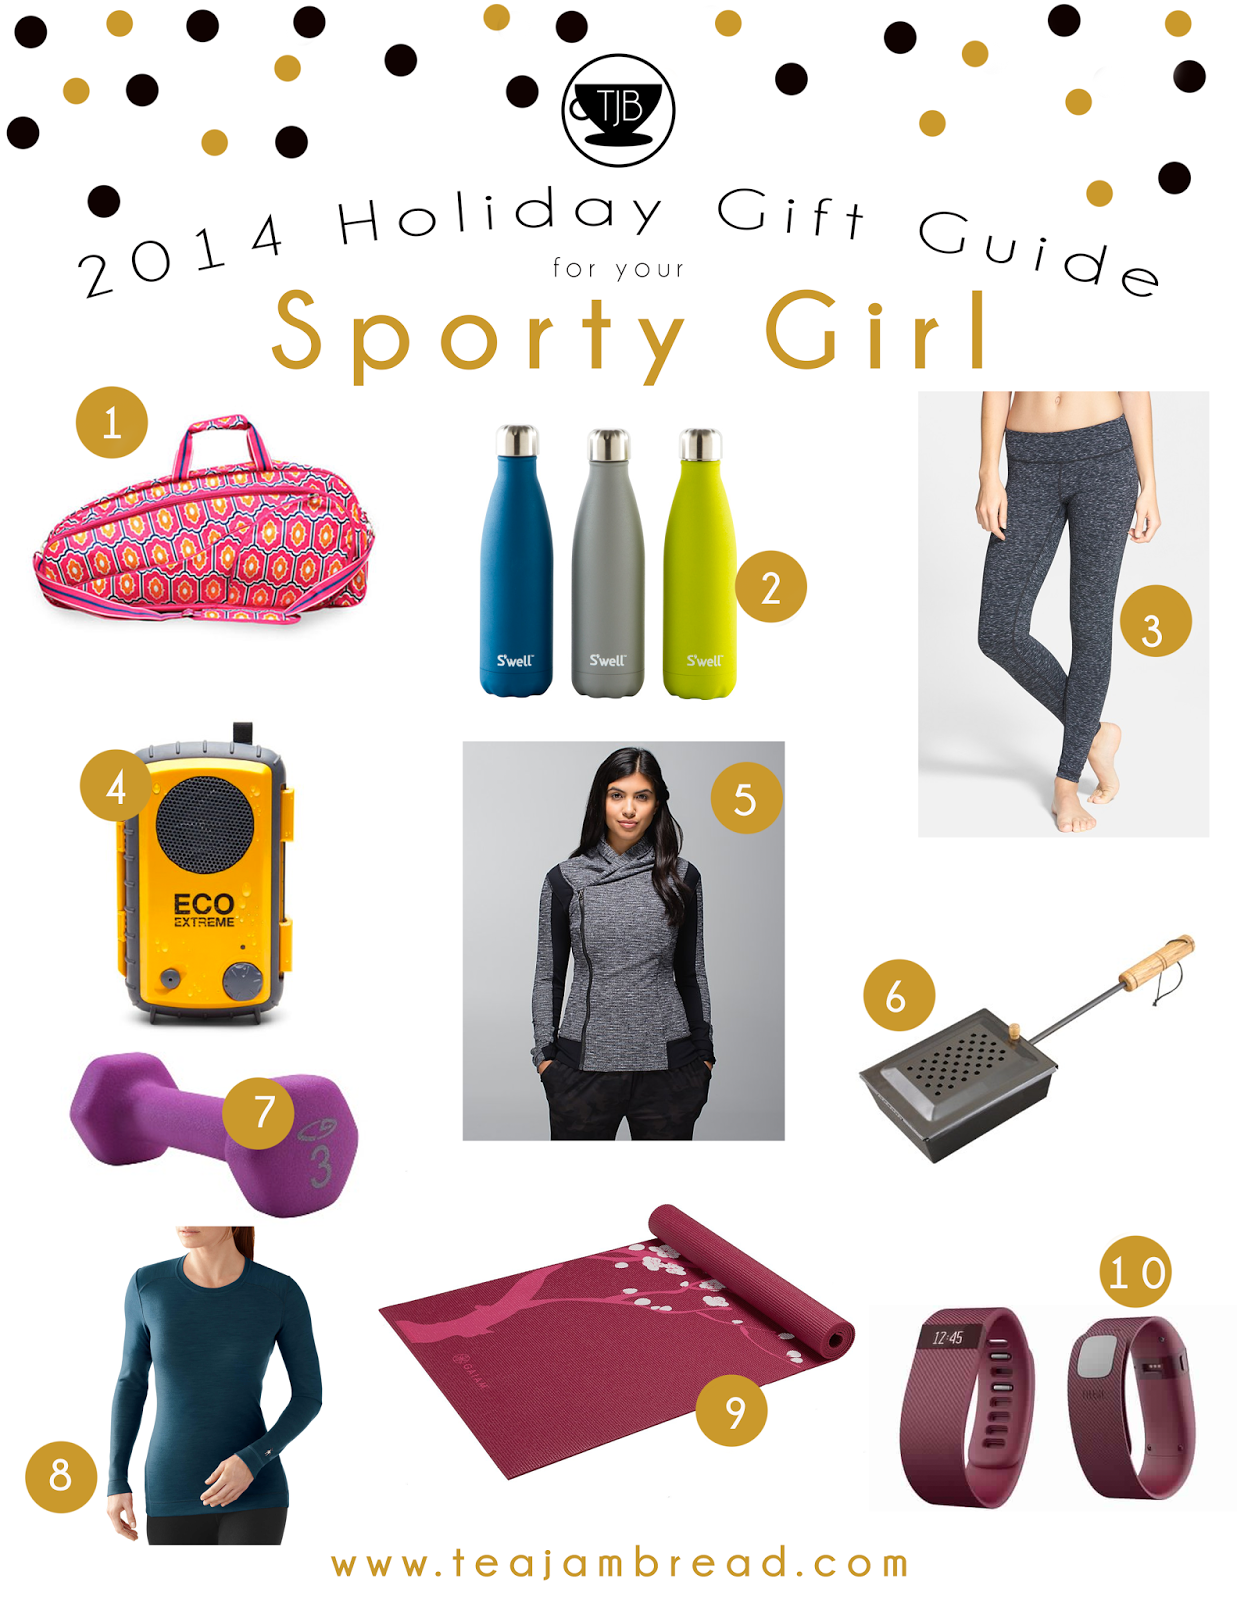 Tea with Jam and Bread: 2014 Holiday Gift Guide: Sporty Girl